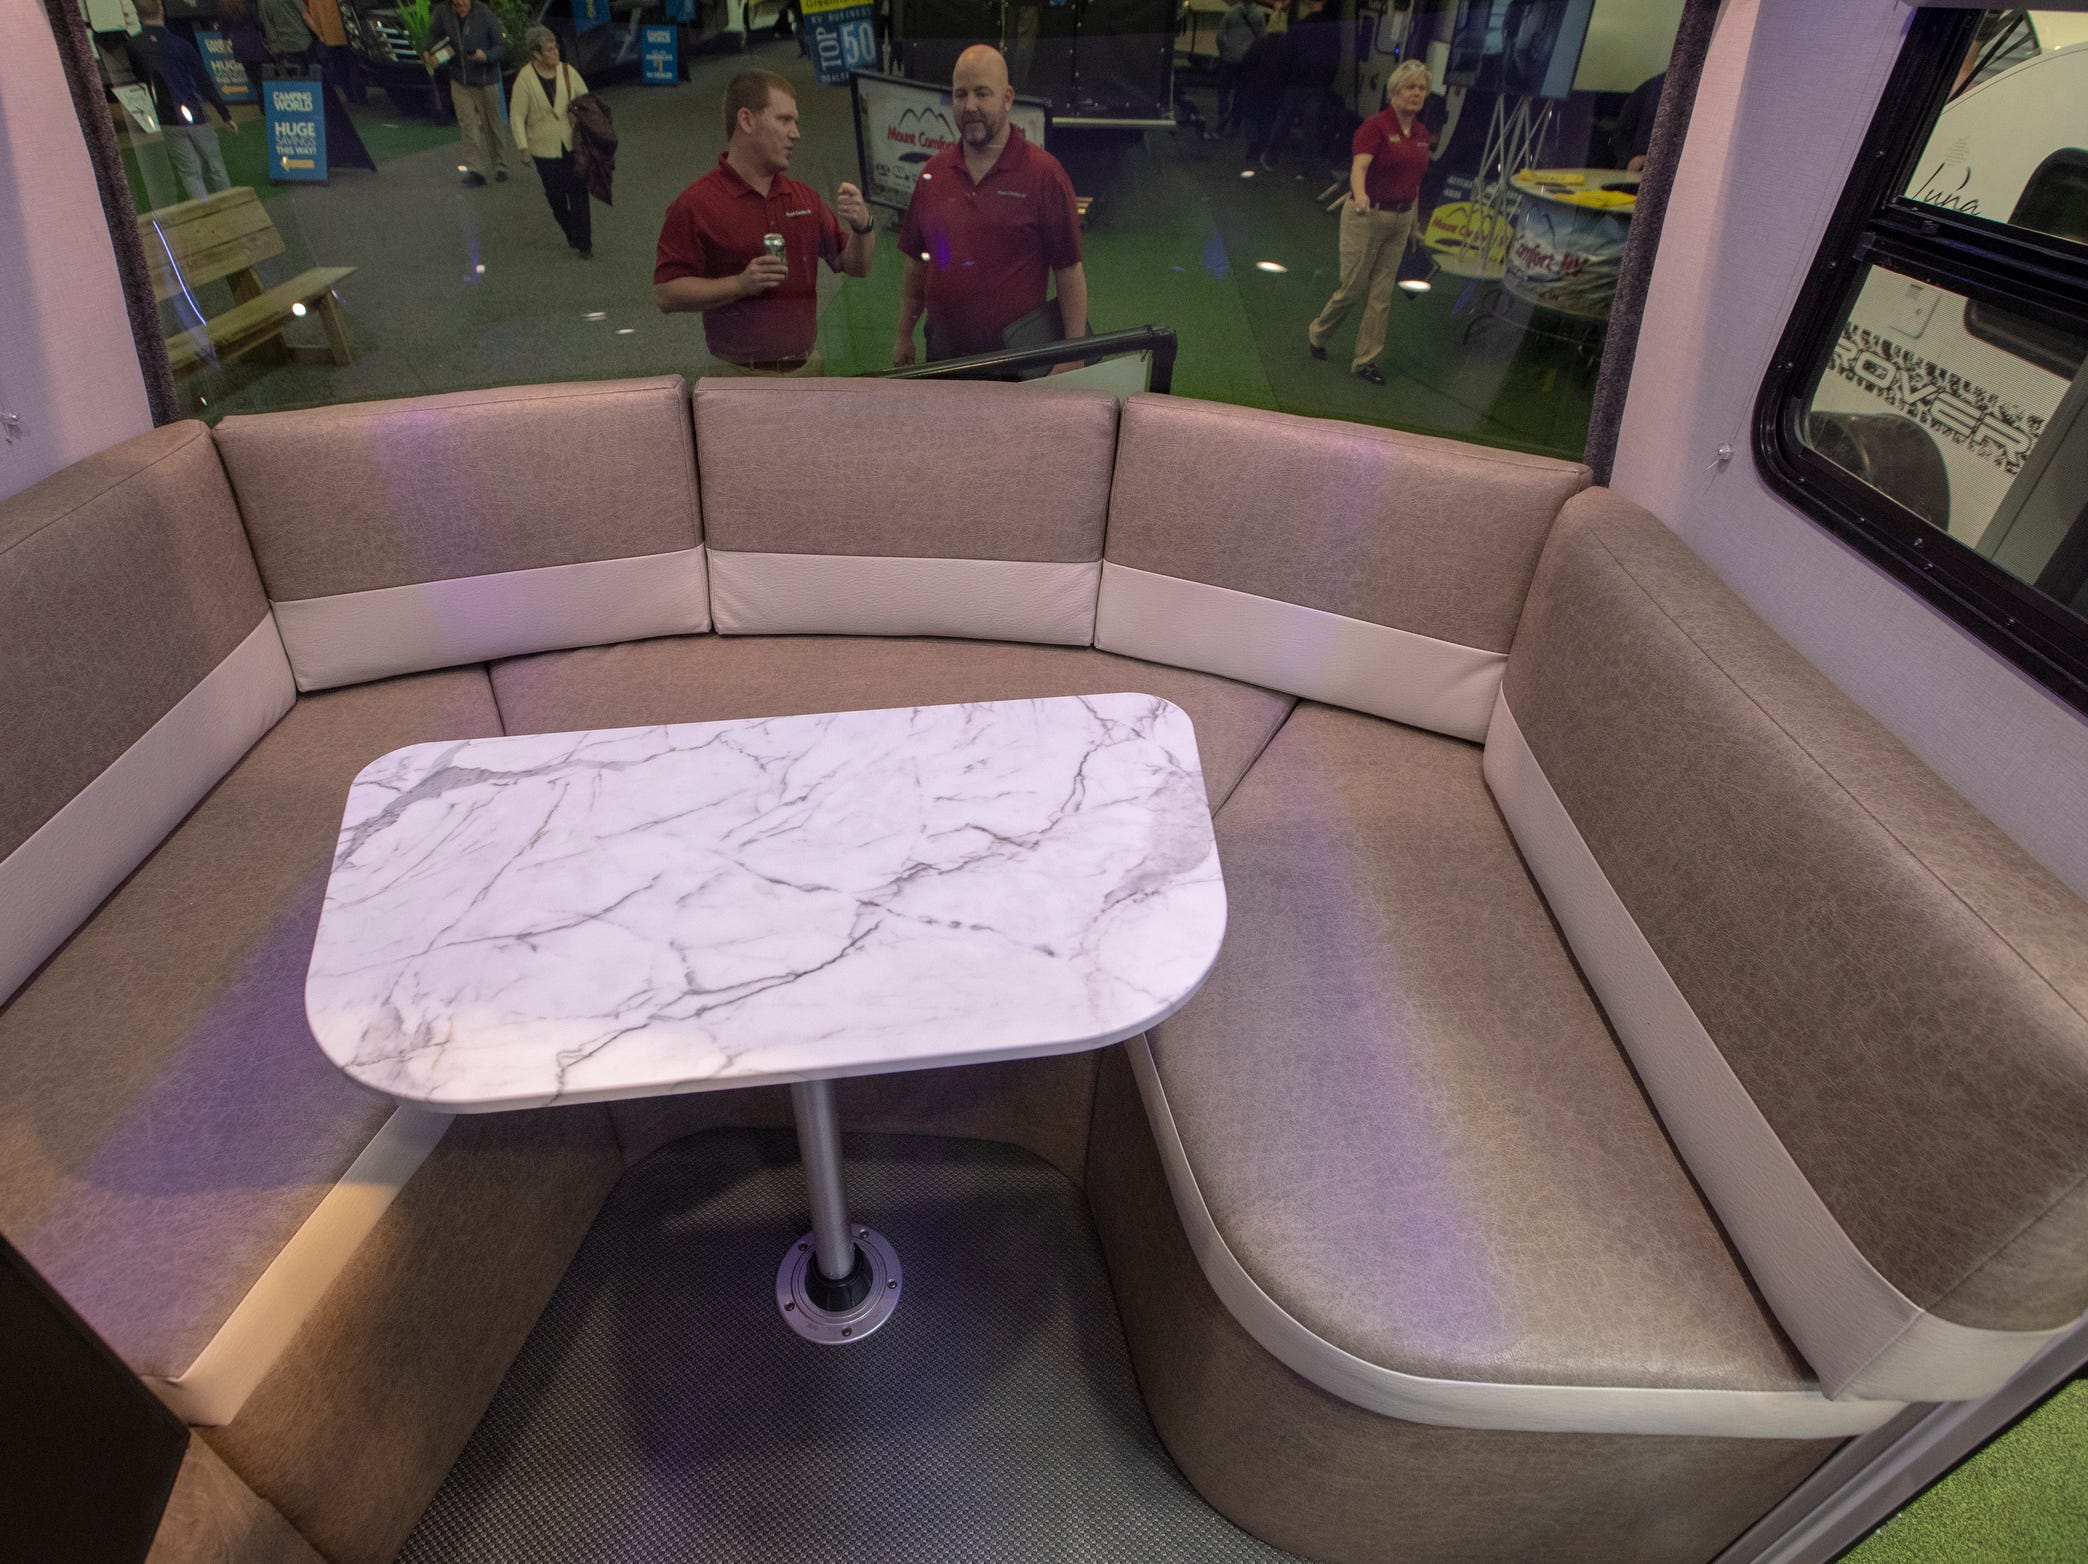 Seating area of the 2019 Intech Sol, complete with a lot of modern touches like blue accent lights and a futuristic front end, at the Indy RV Expo, Indiana State Fairgrounds, Indianapolis, Sunday, January 6, 2019. The show runs through the 13th.